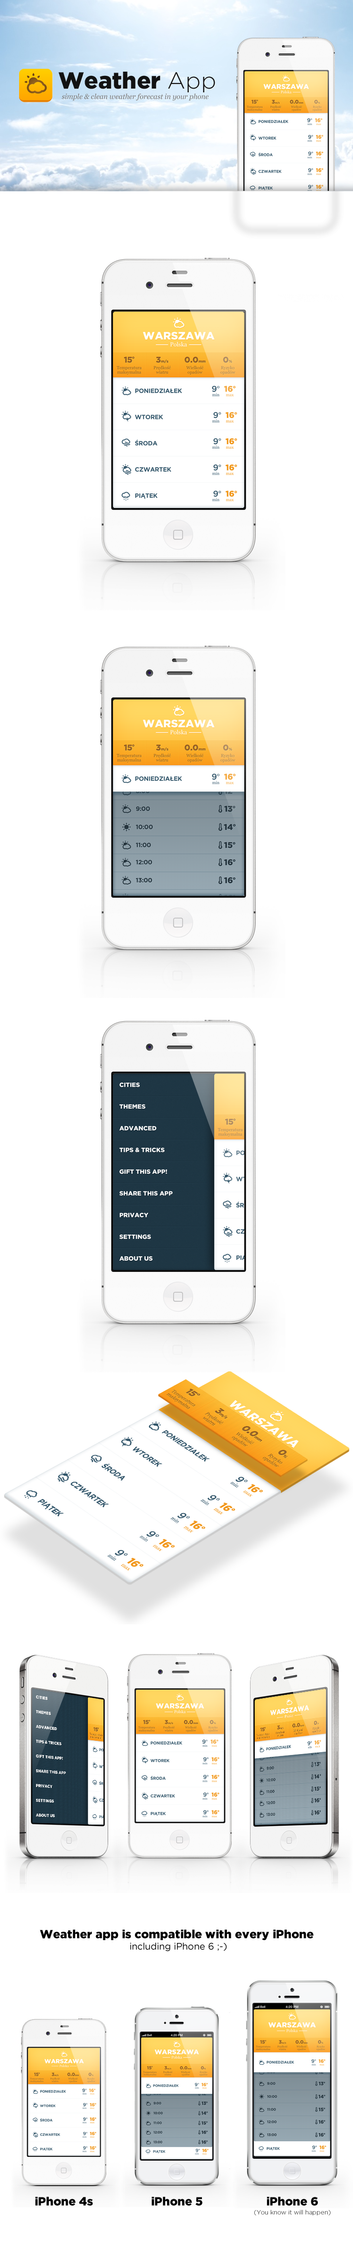 Weather forecast app by EffectiveFive